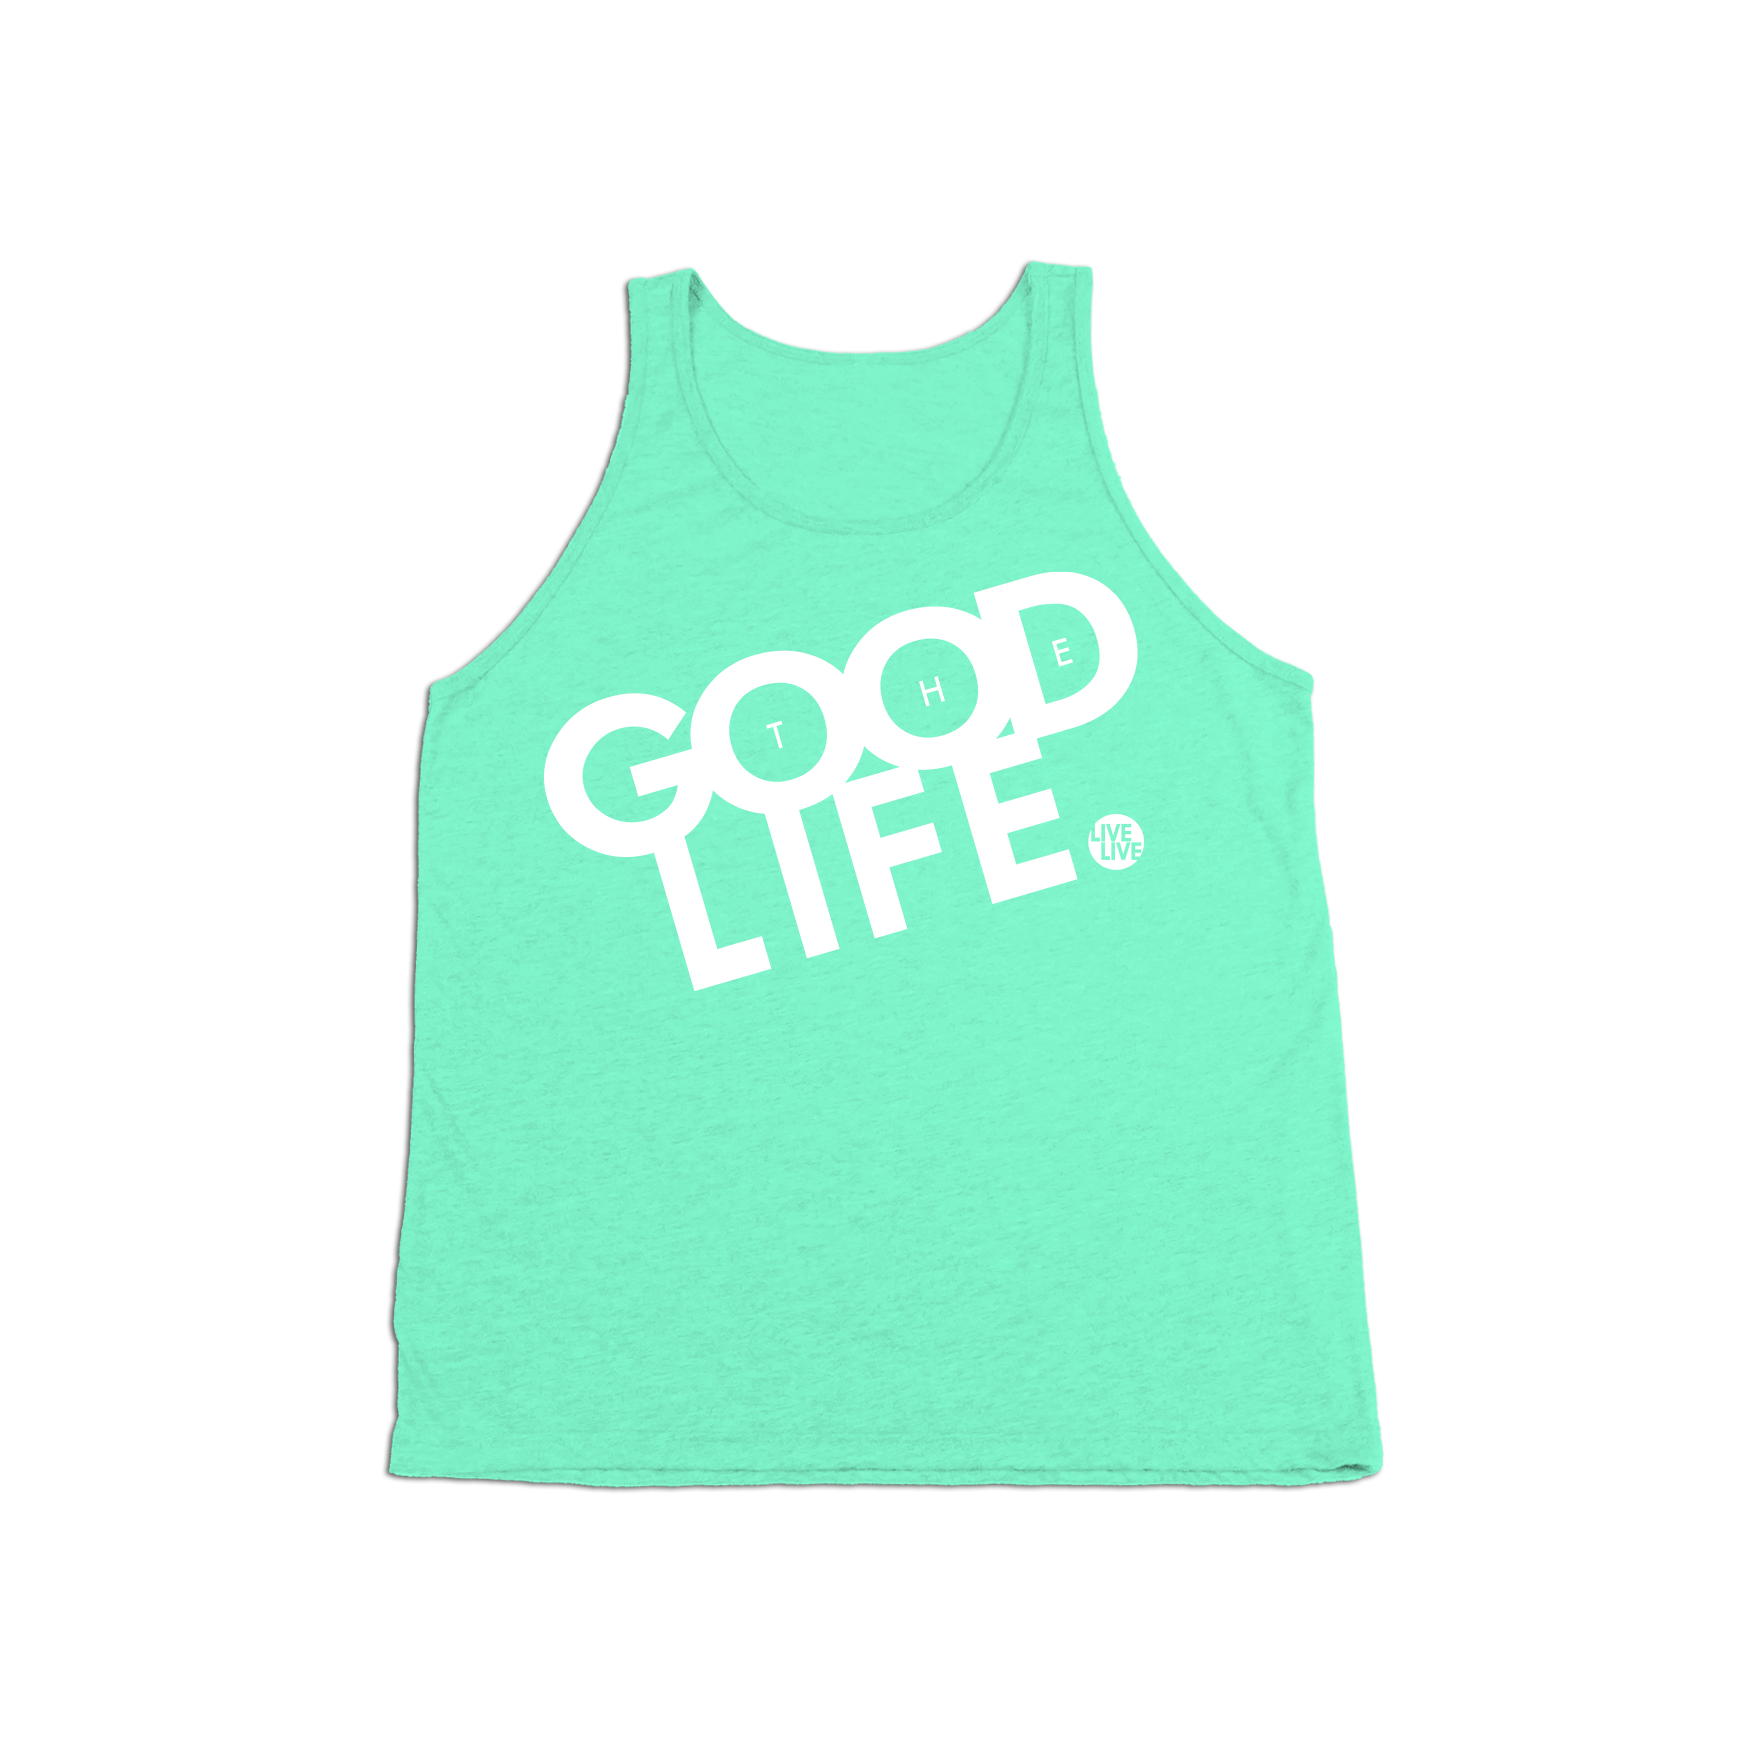 #THEGOODLIFE KIDS Tank Top - White - Hat Mount for GoPro